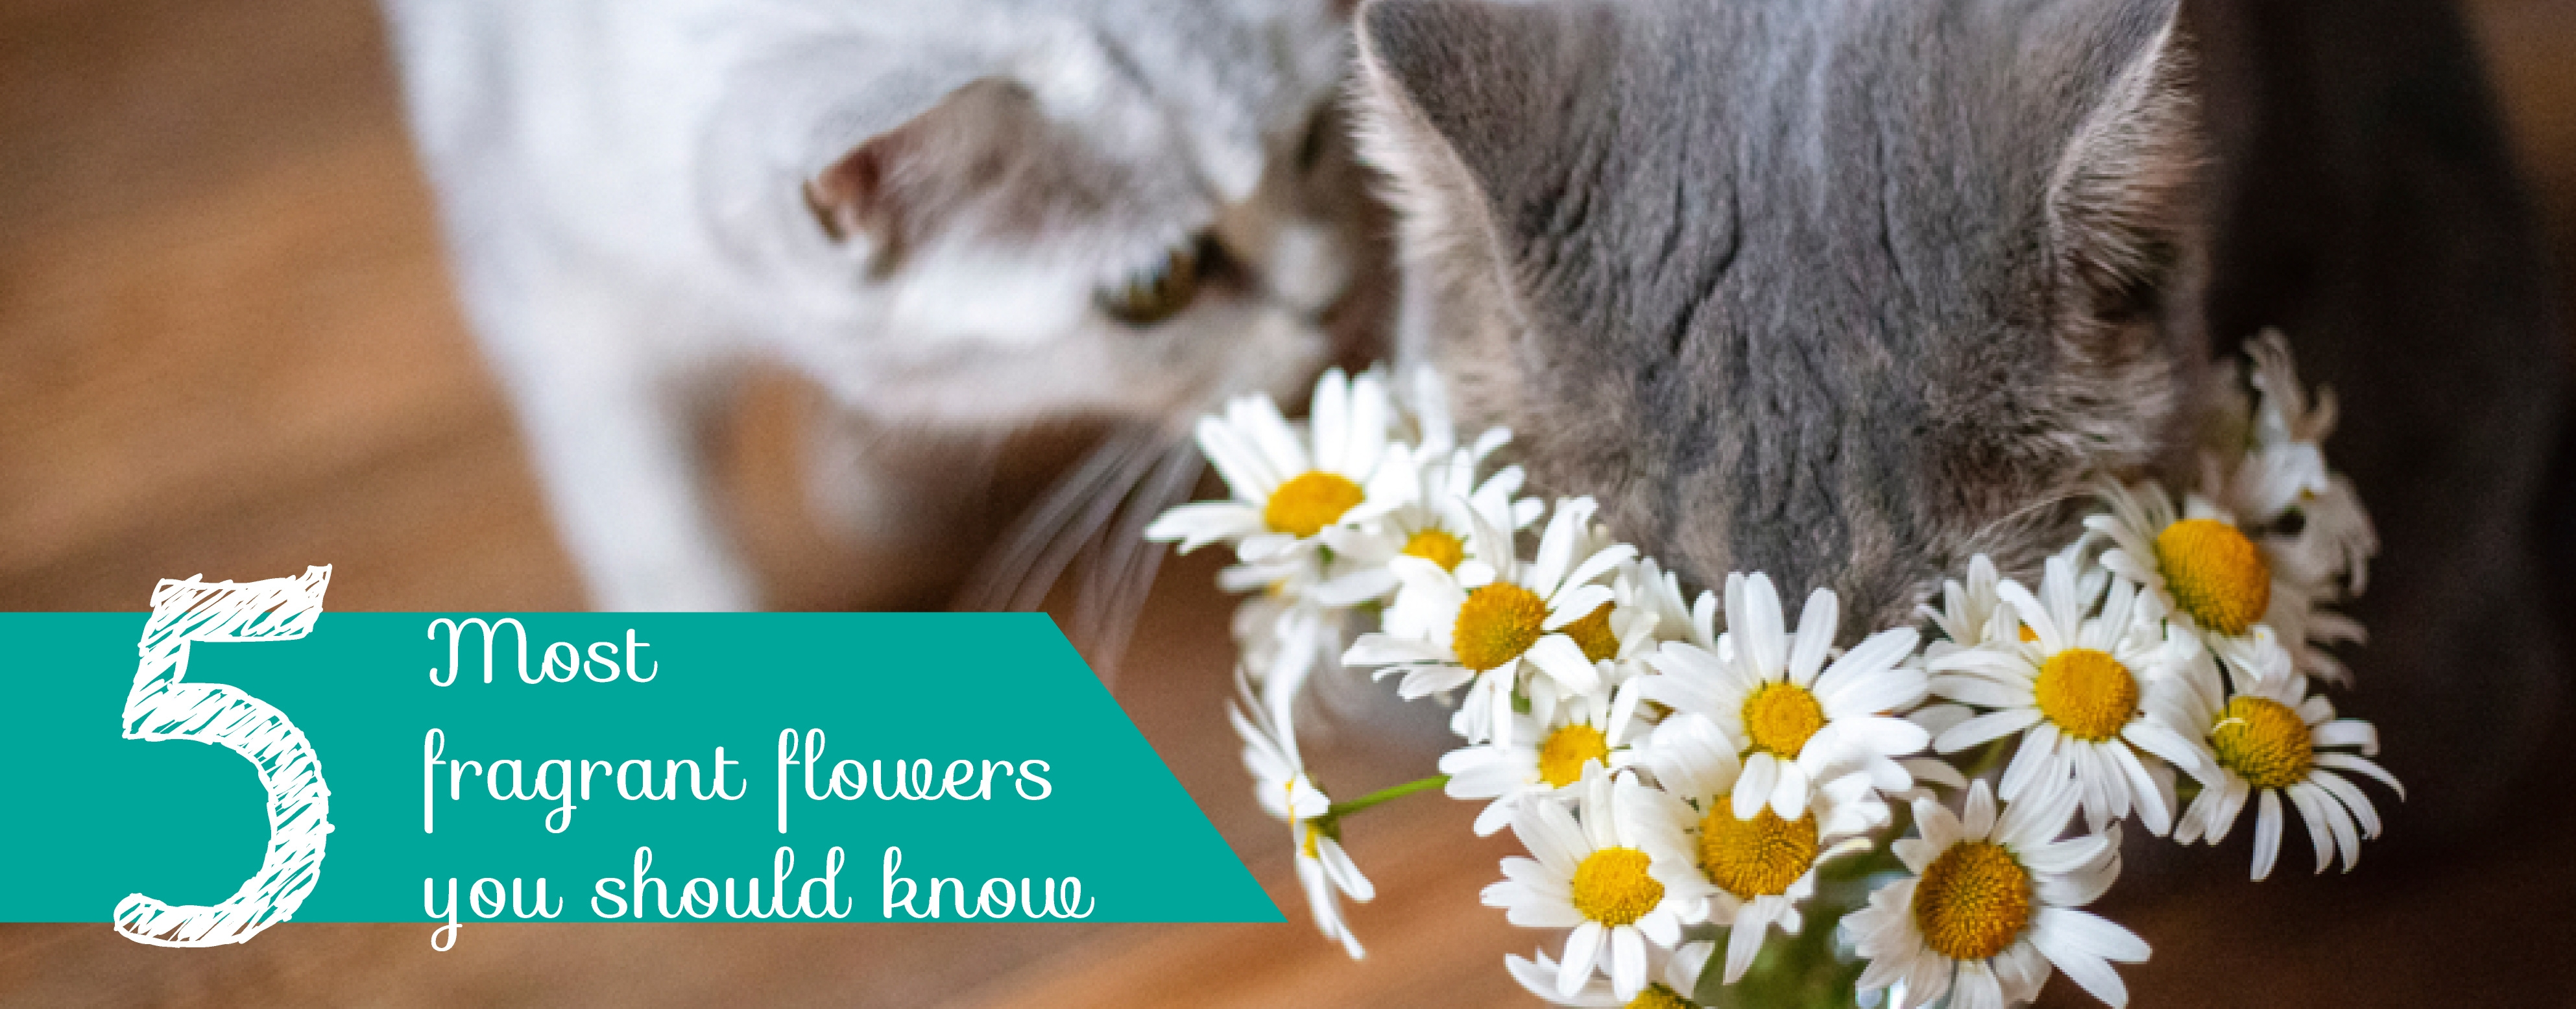 H5 most fragrant flowers you should know